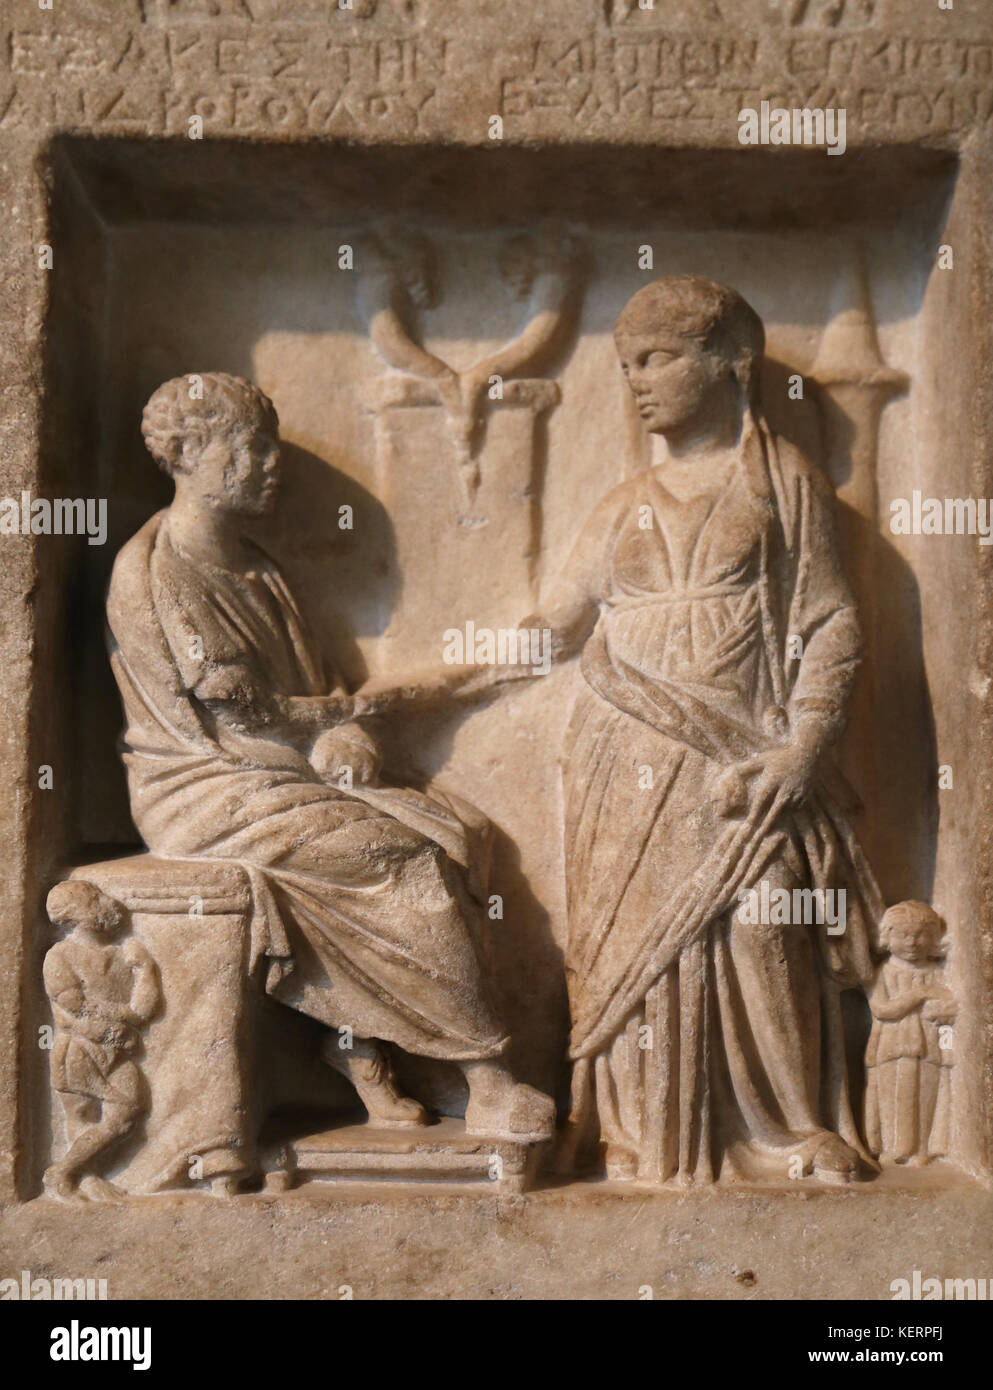 Grave stela of Exakestes, son of Androboulos, and his wife Metries. From Smyrna, Asia Minor. 150-100 BCE. British - Stock Image